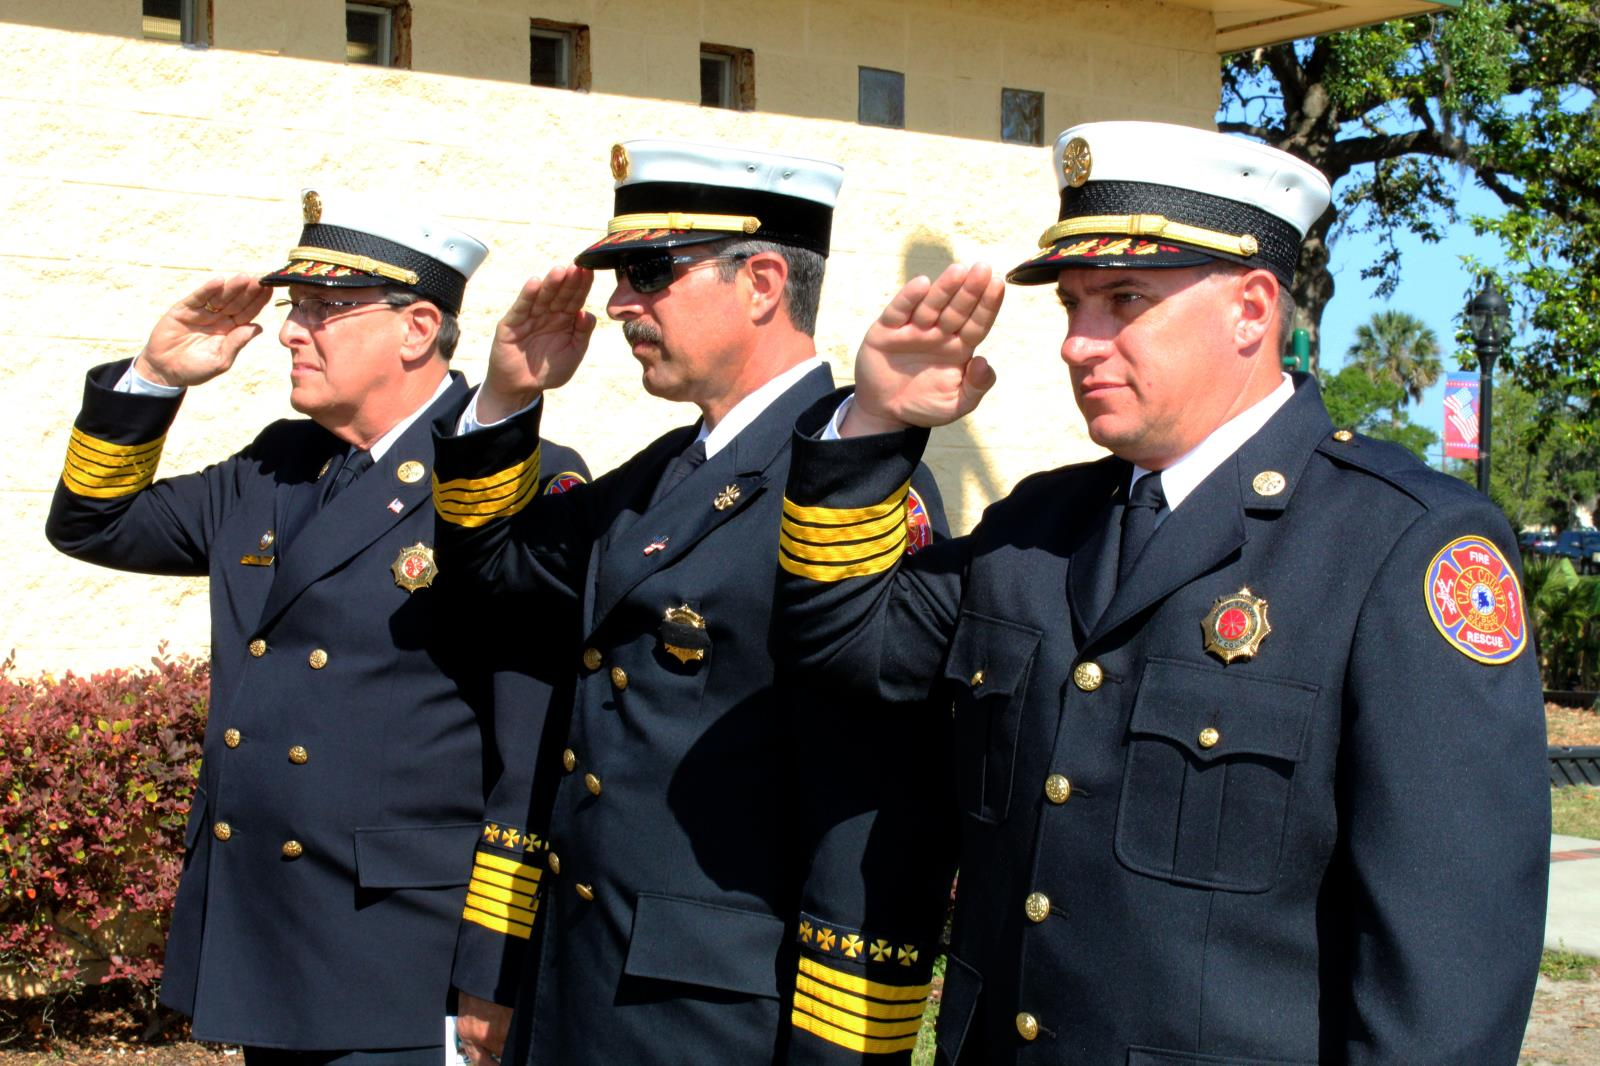 Fire chiefs in full uniform saluting